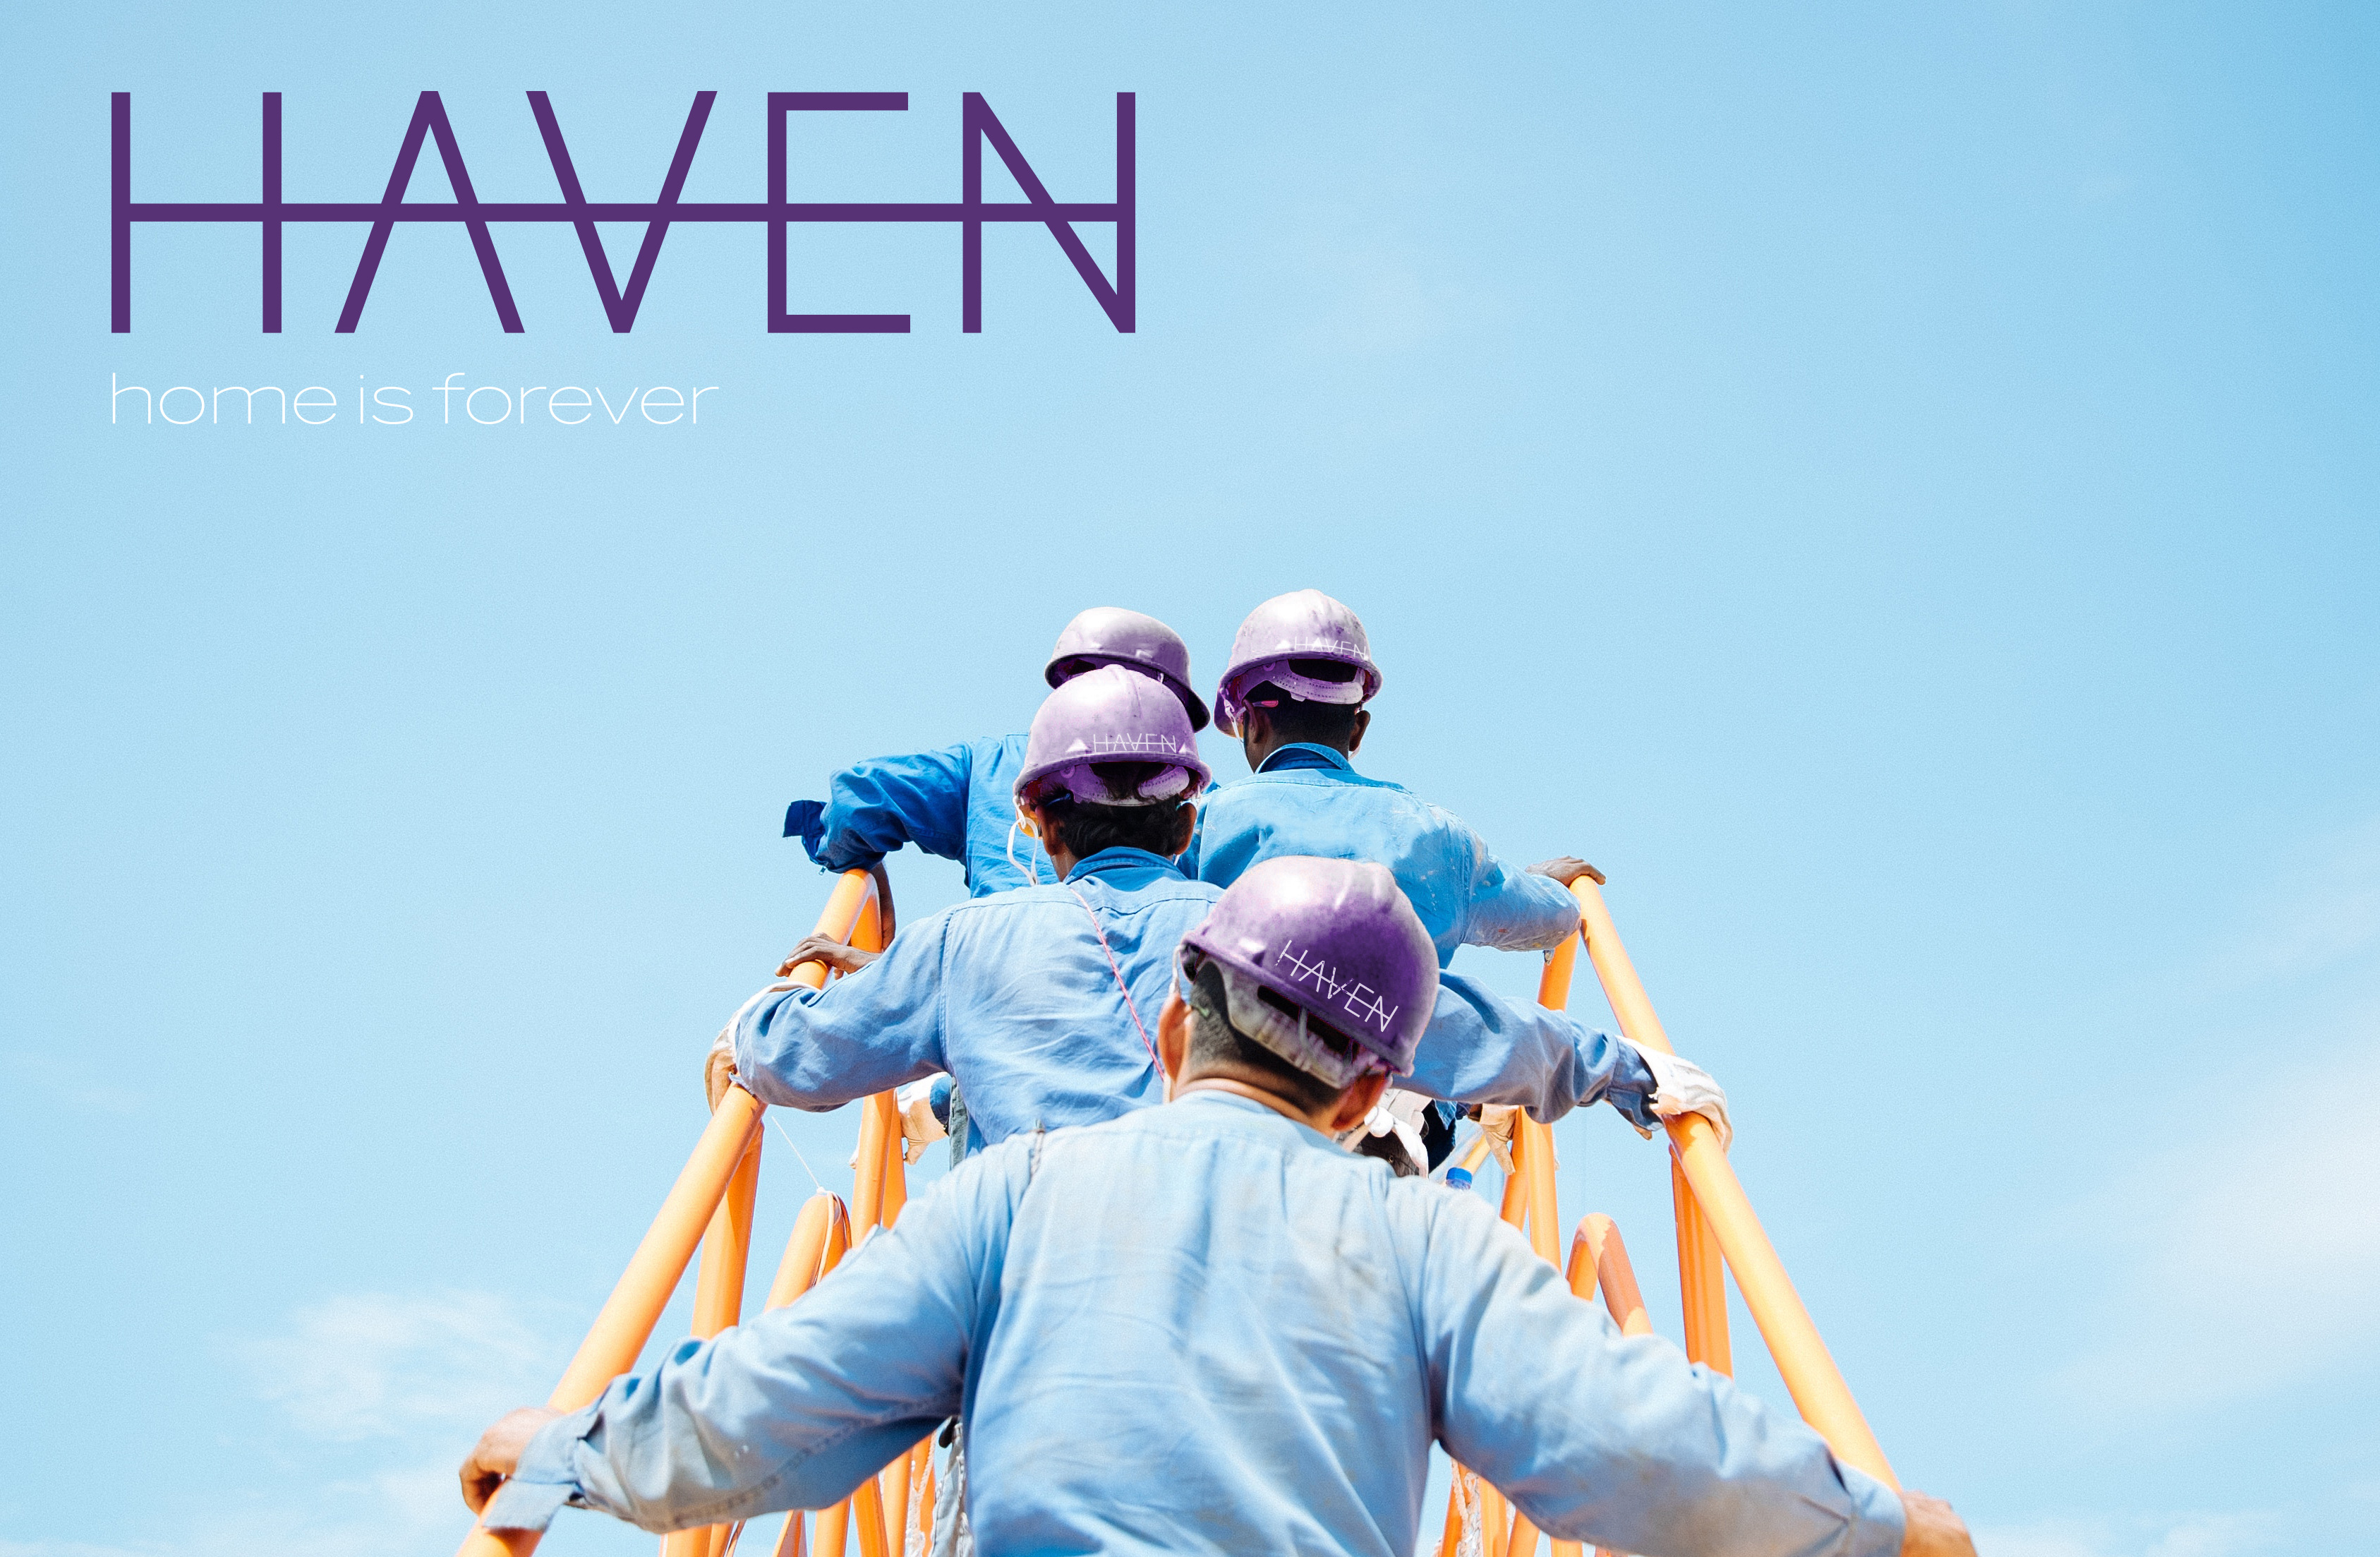 zach-stevens-design-branding-logo-haven-construction